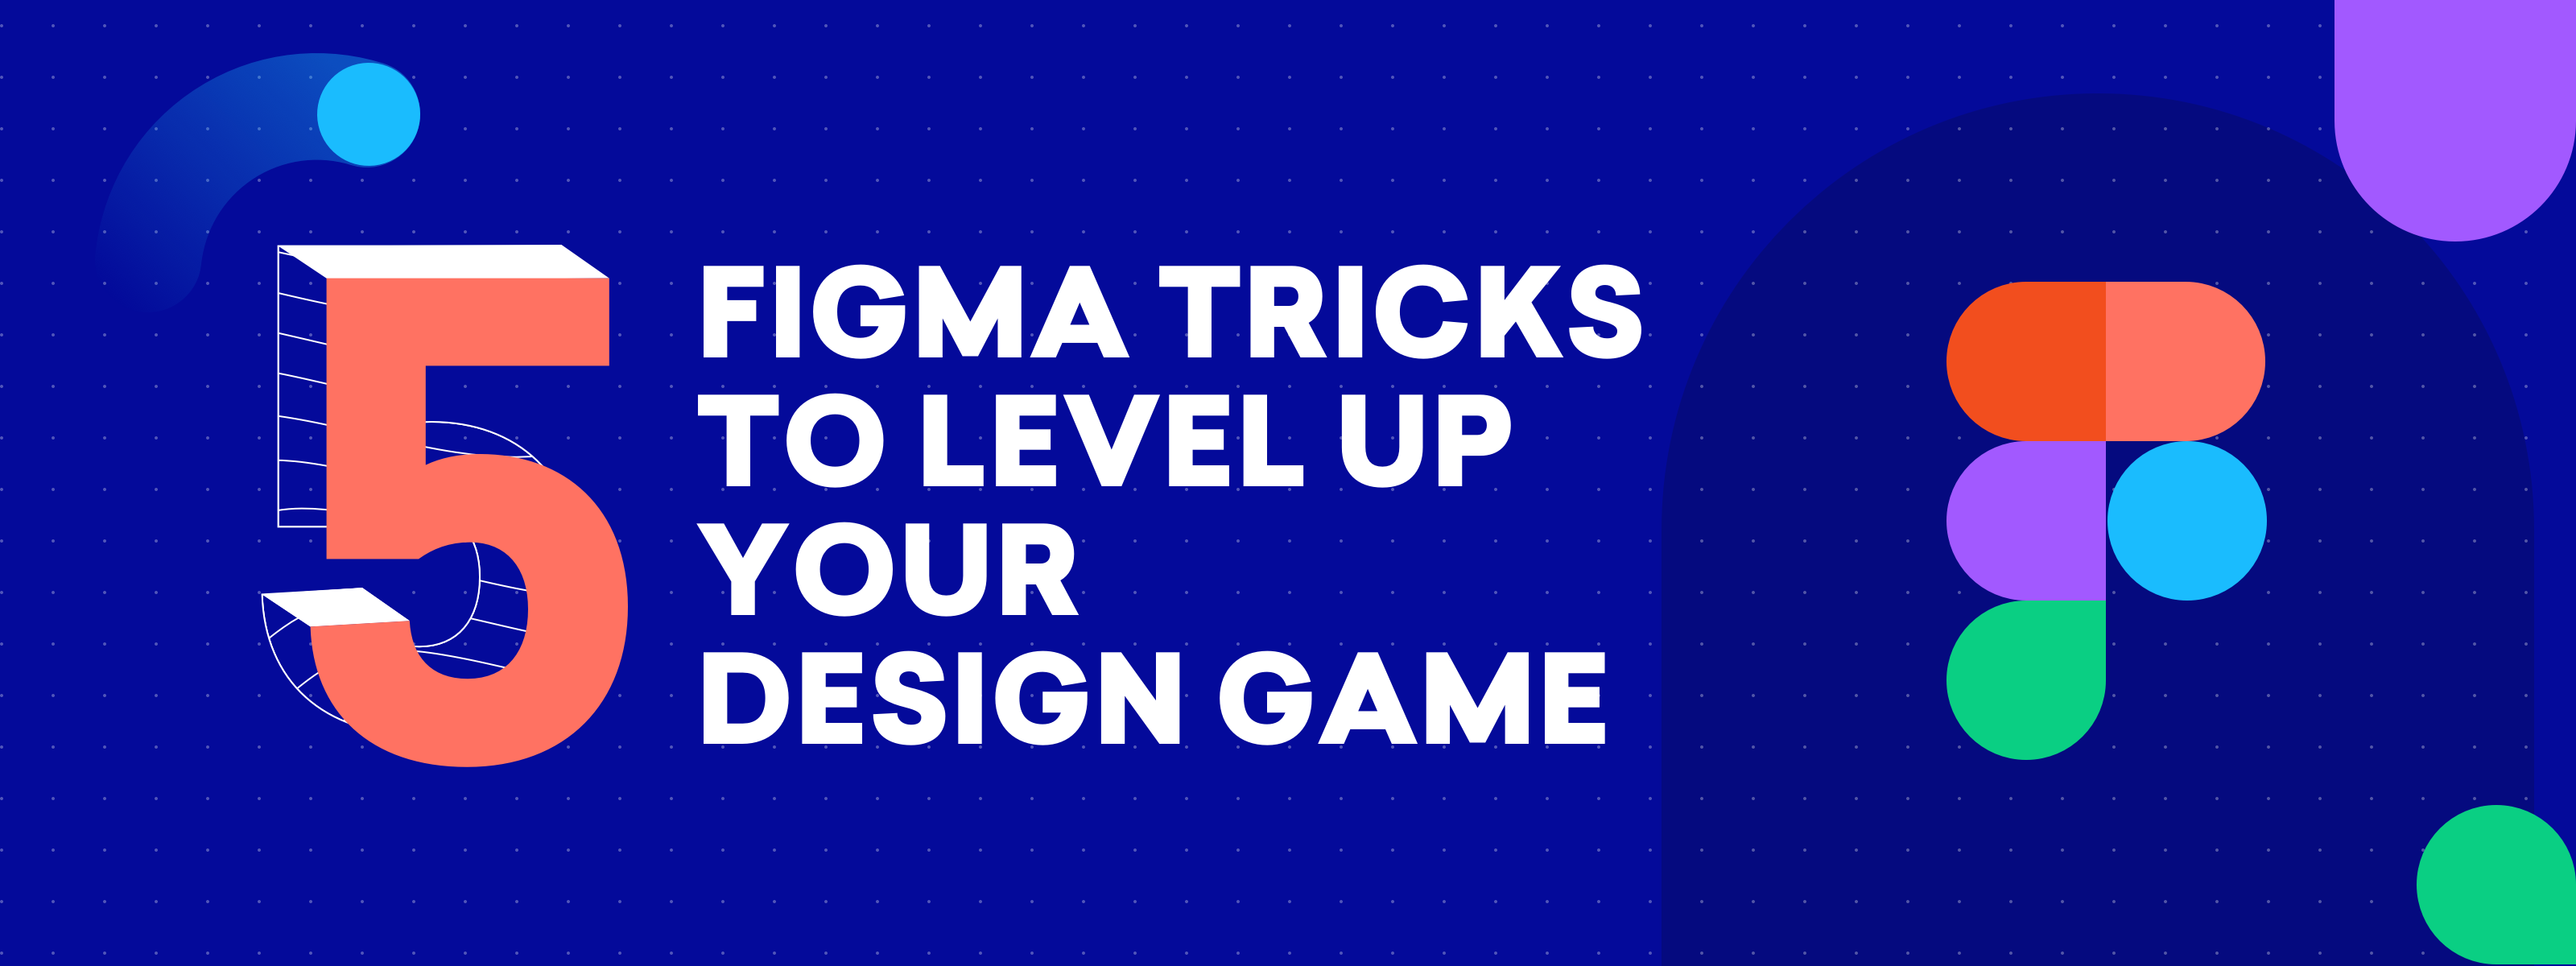 5 Figma Tricks To Level Up Your Design Game